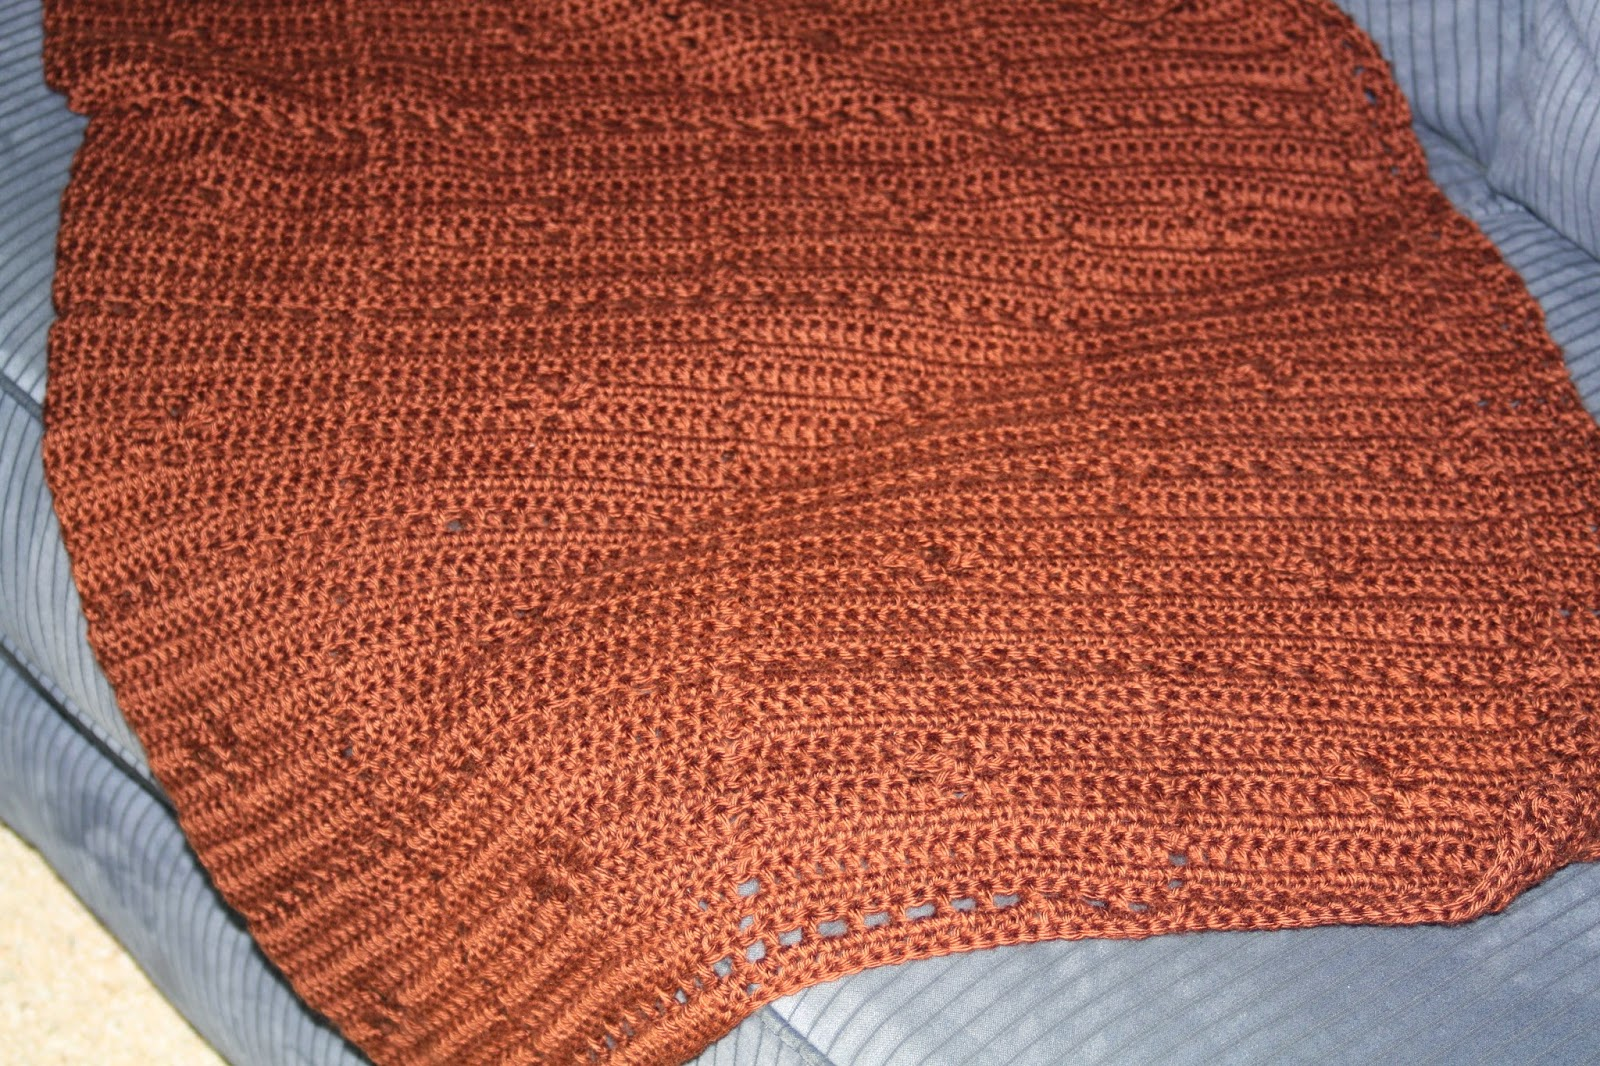 brown crochet blanket